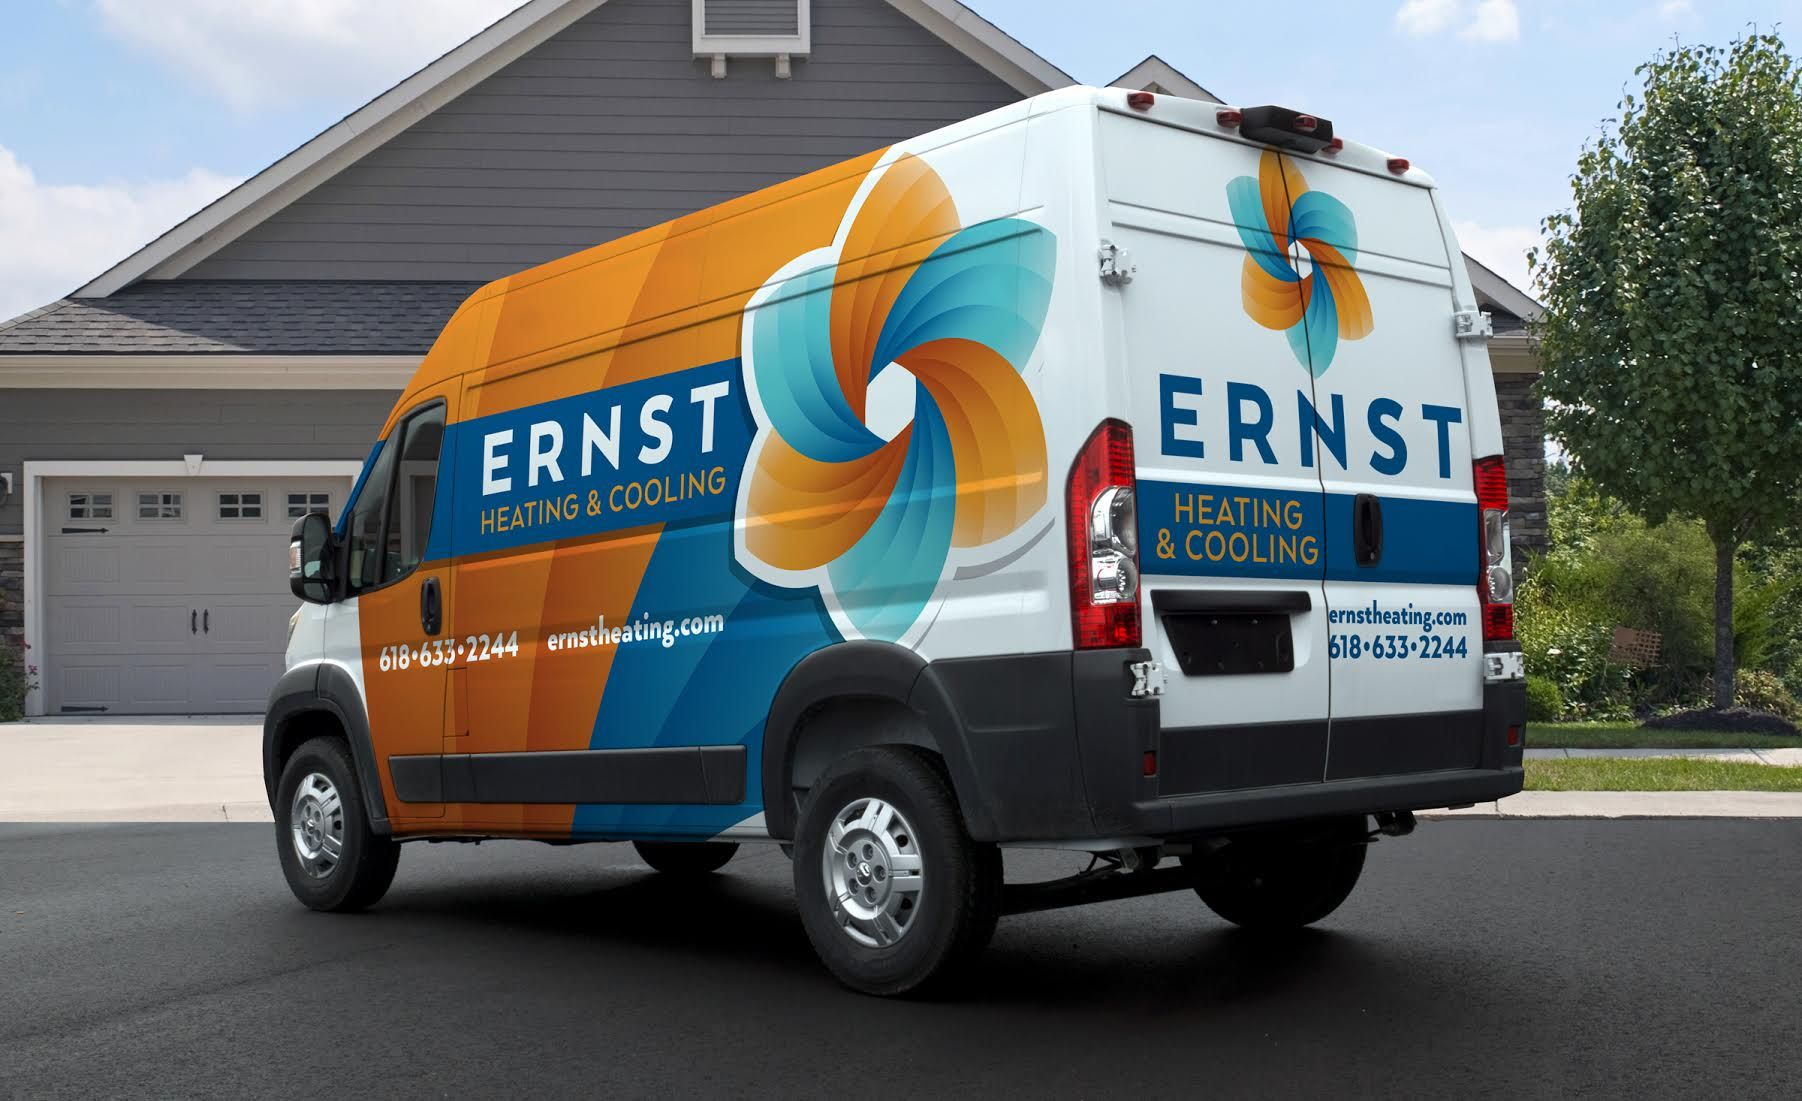 Fleet branding, and HVAC logo design for Ernst Heating